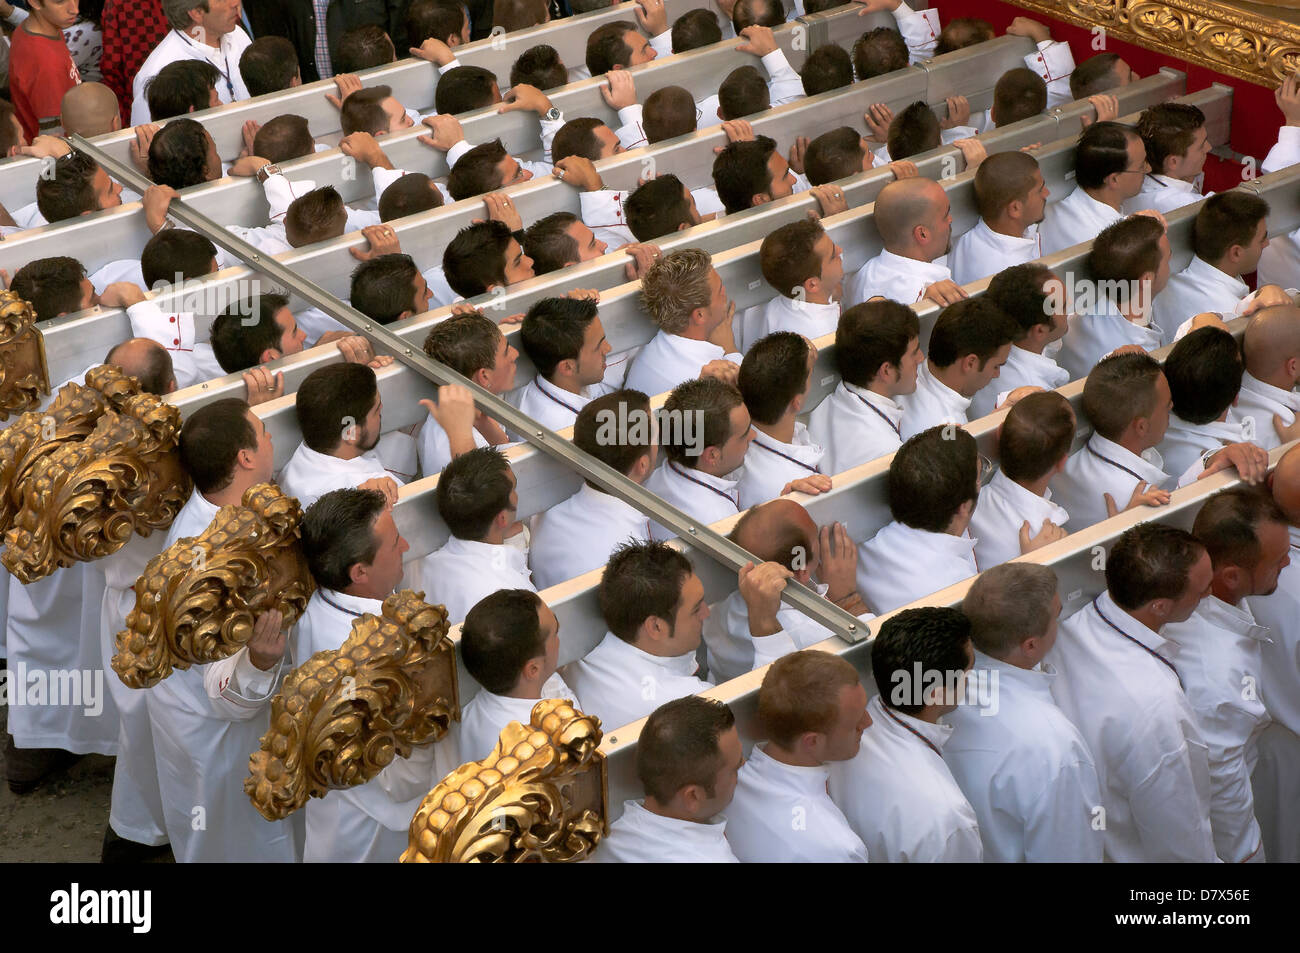 Holy Week, Brotherhood of the Last Supper, Men throne; Malaga, Region of Andalusia, Spain, Europe - Stock Image